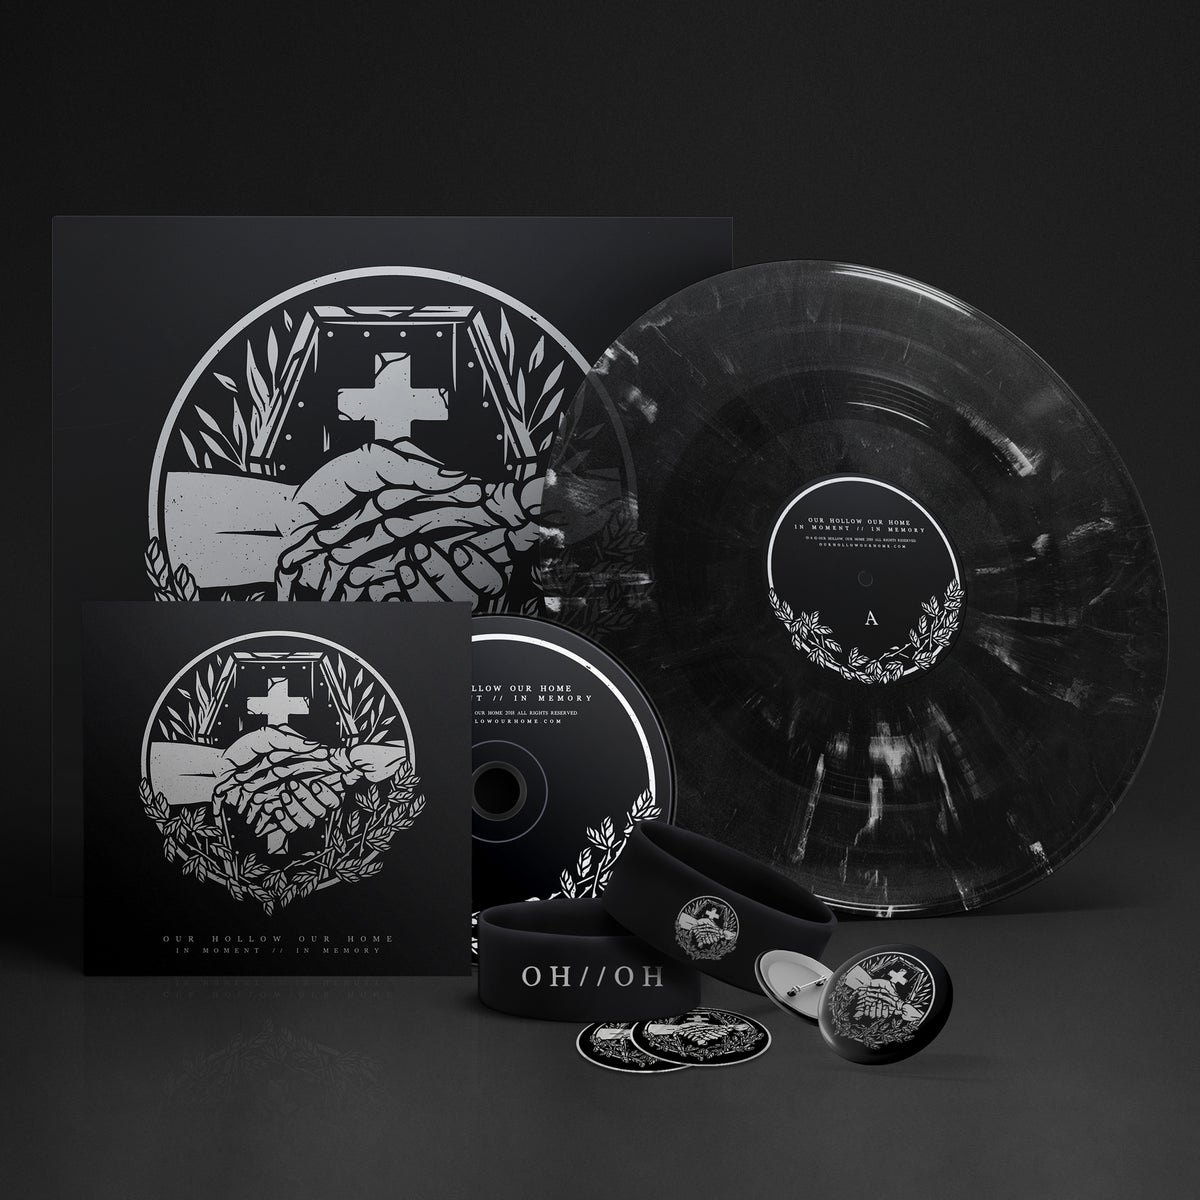 Image of IN MOMENT // IN MEMORY - CD & VINYL BUNDLE